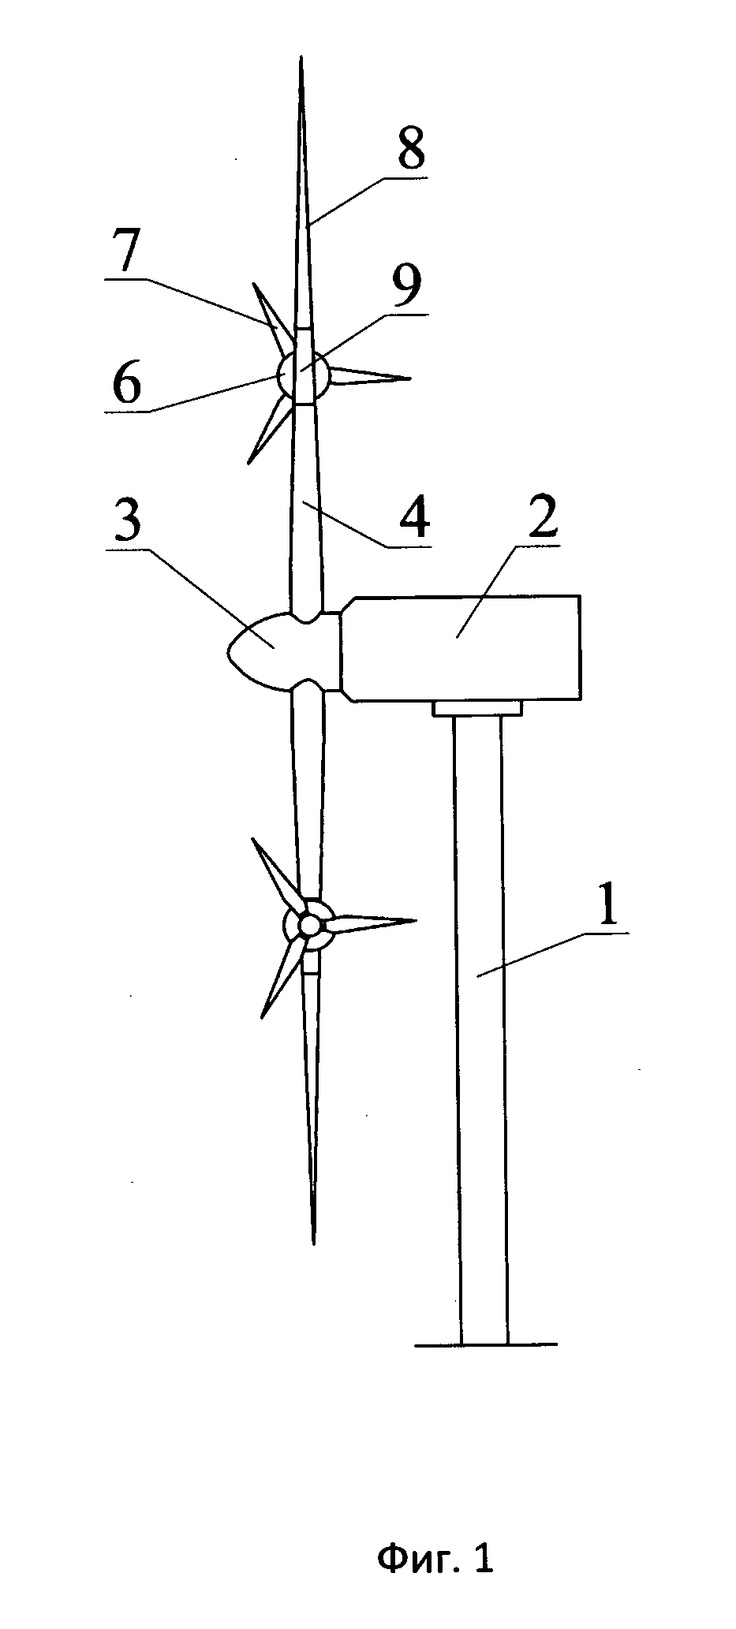 161 best images about wind power patents on pinterest